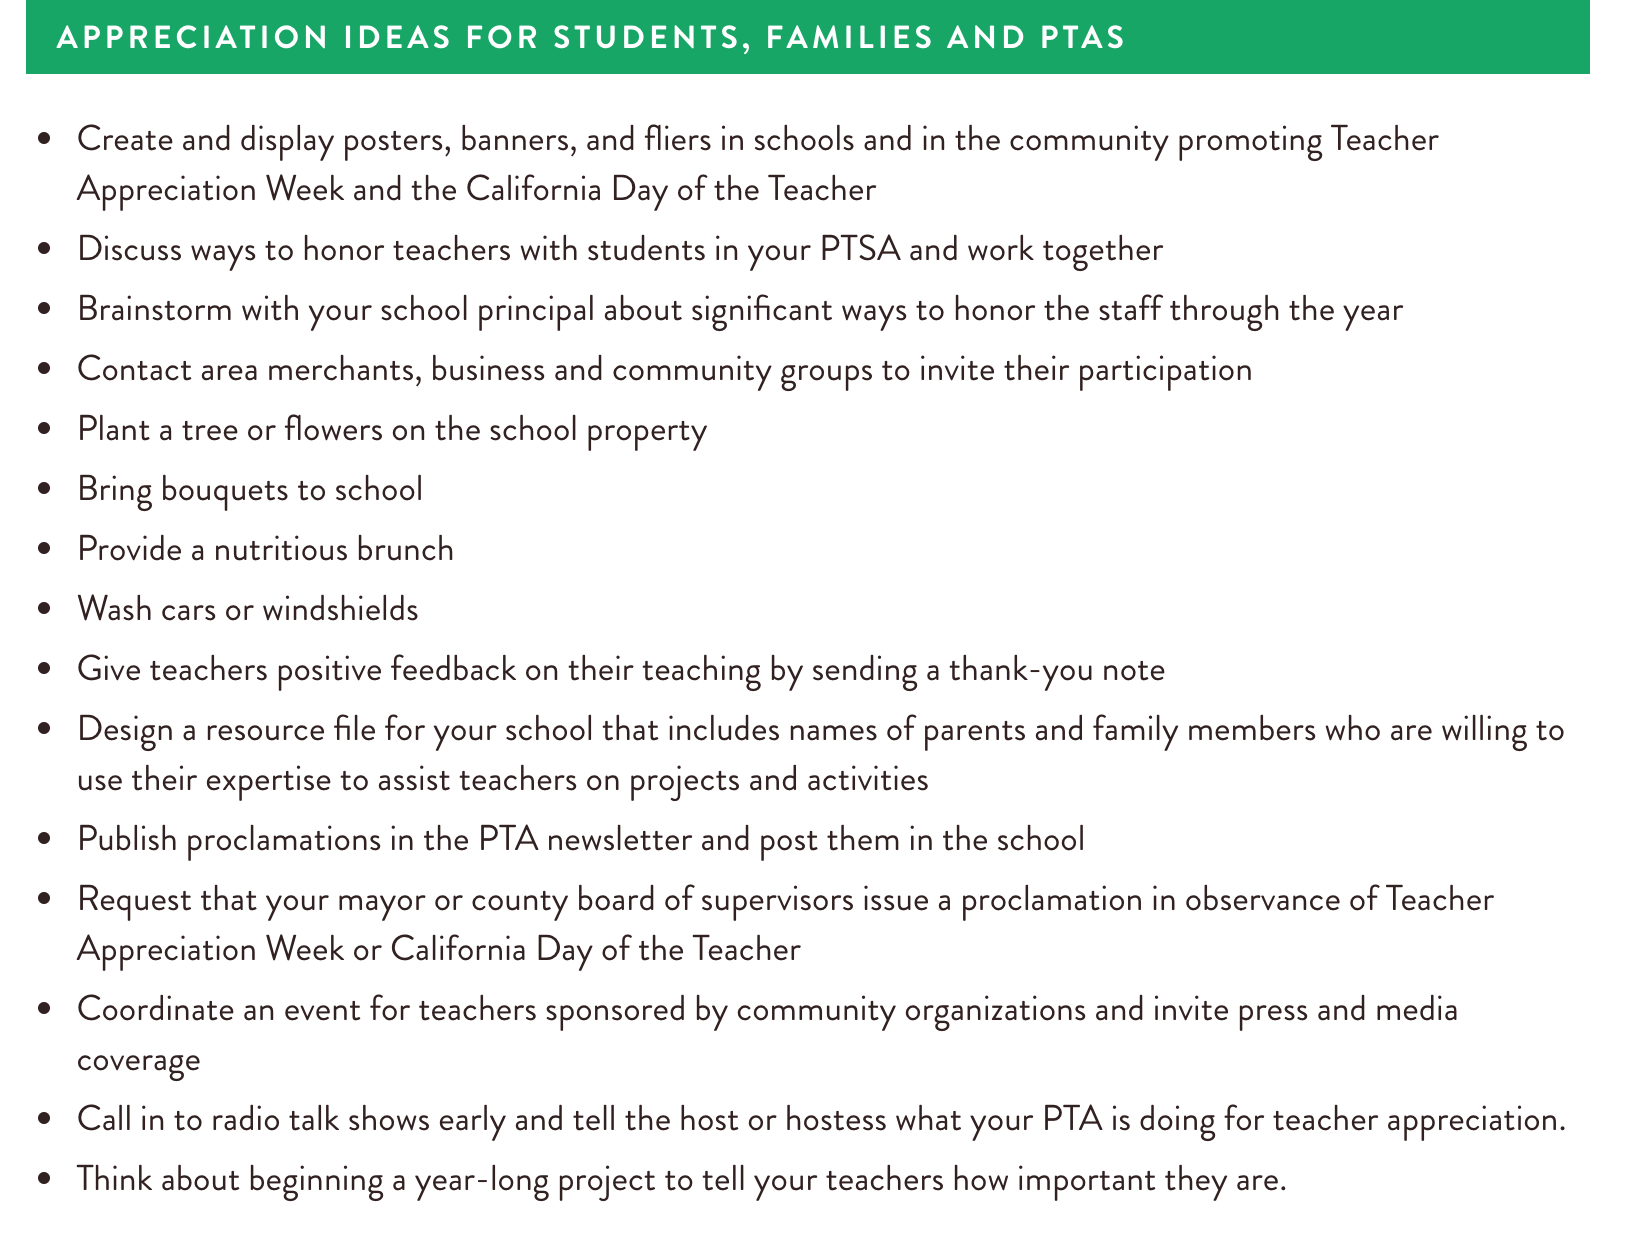 Source: California PTA,  https://capta.org/programs-events/teacher-appreciation-week/